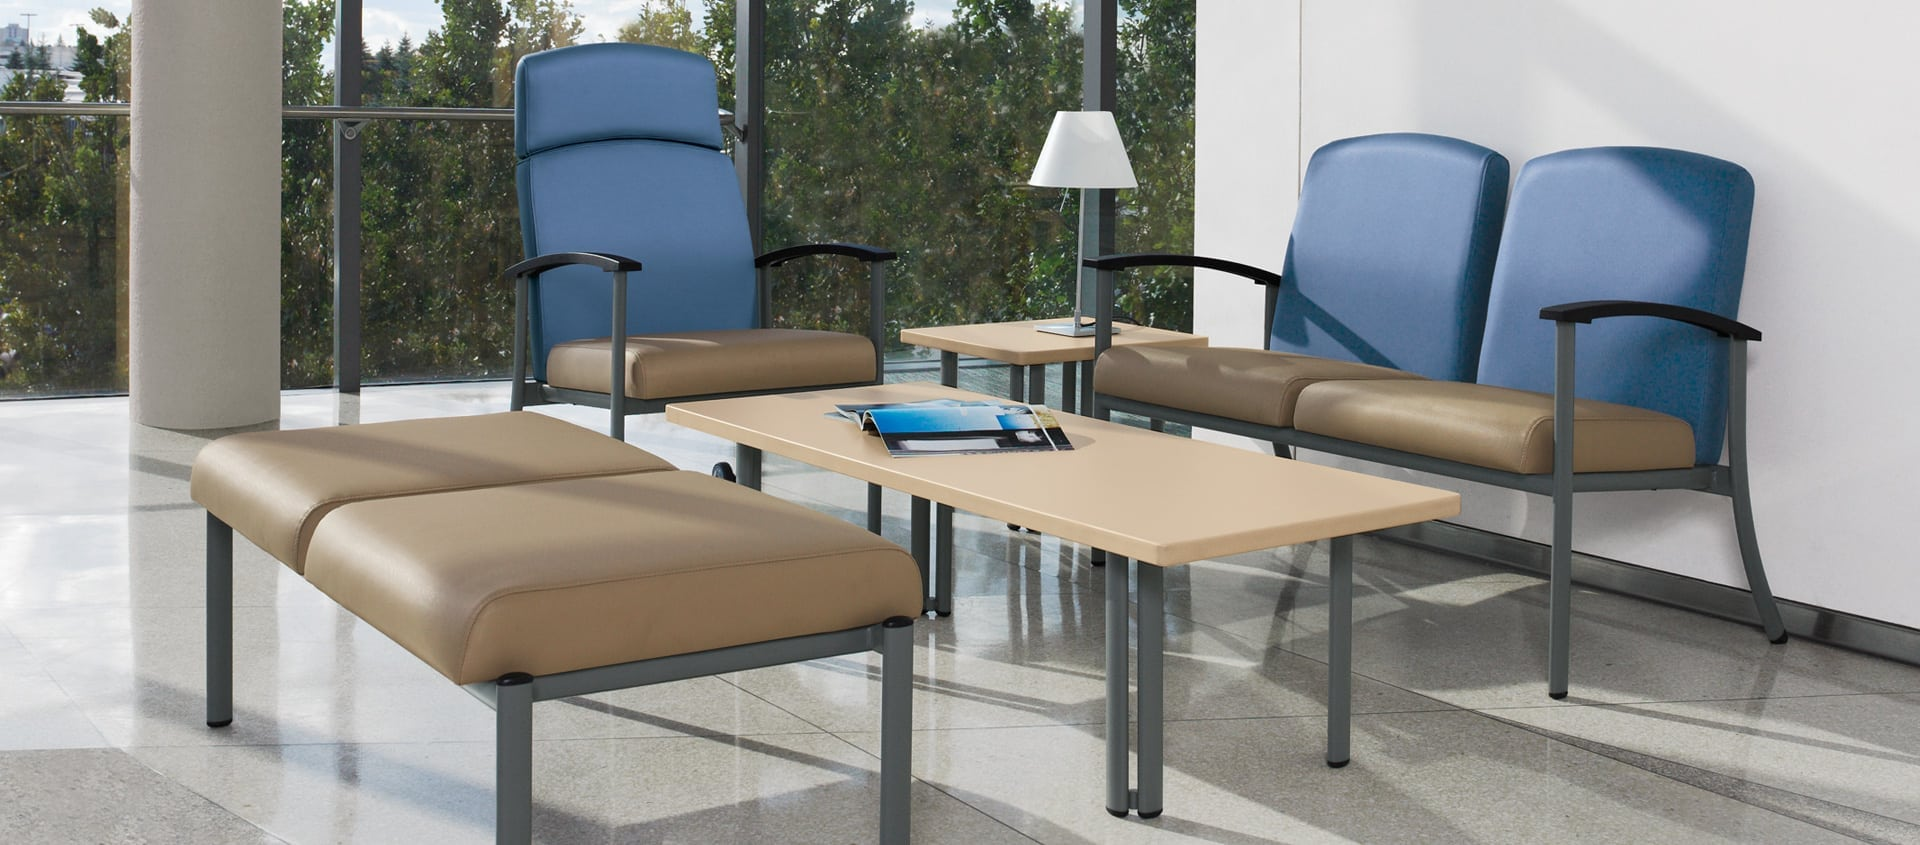 Global Furniture's Strand series is the perfect synthesis of versatility, comfort, durability and value